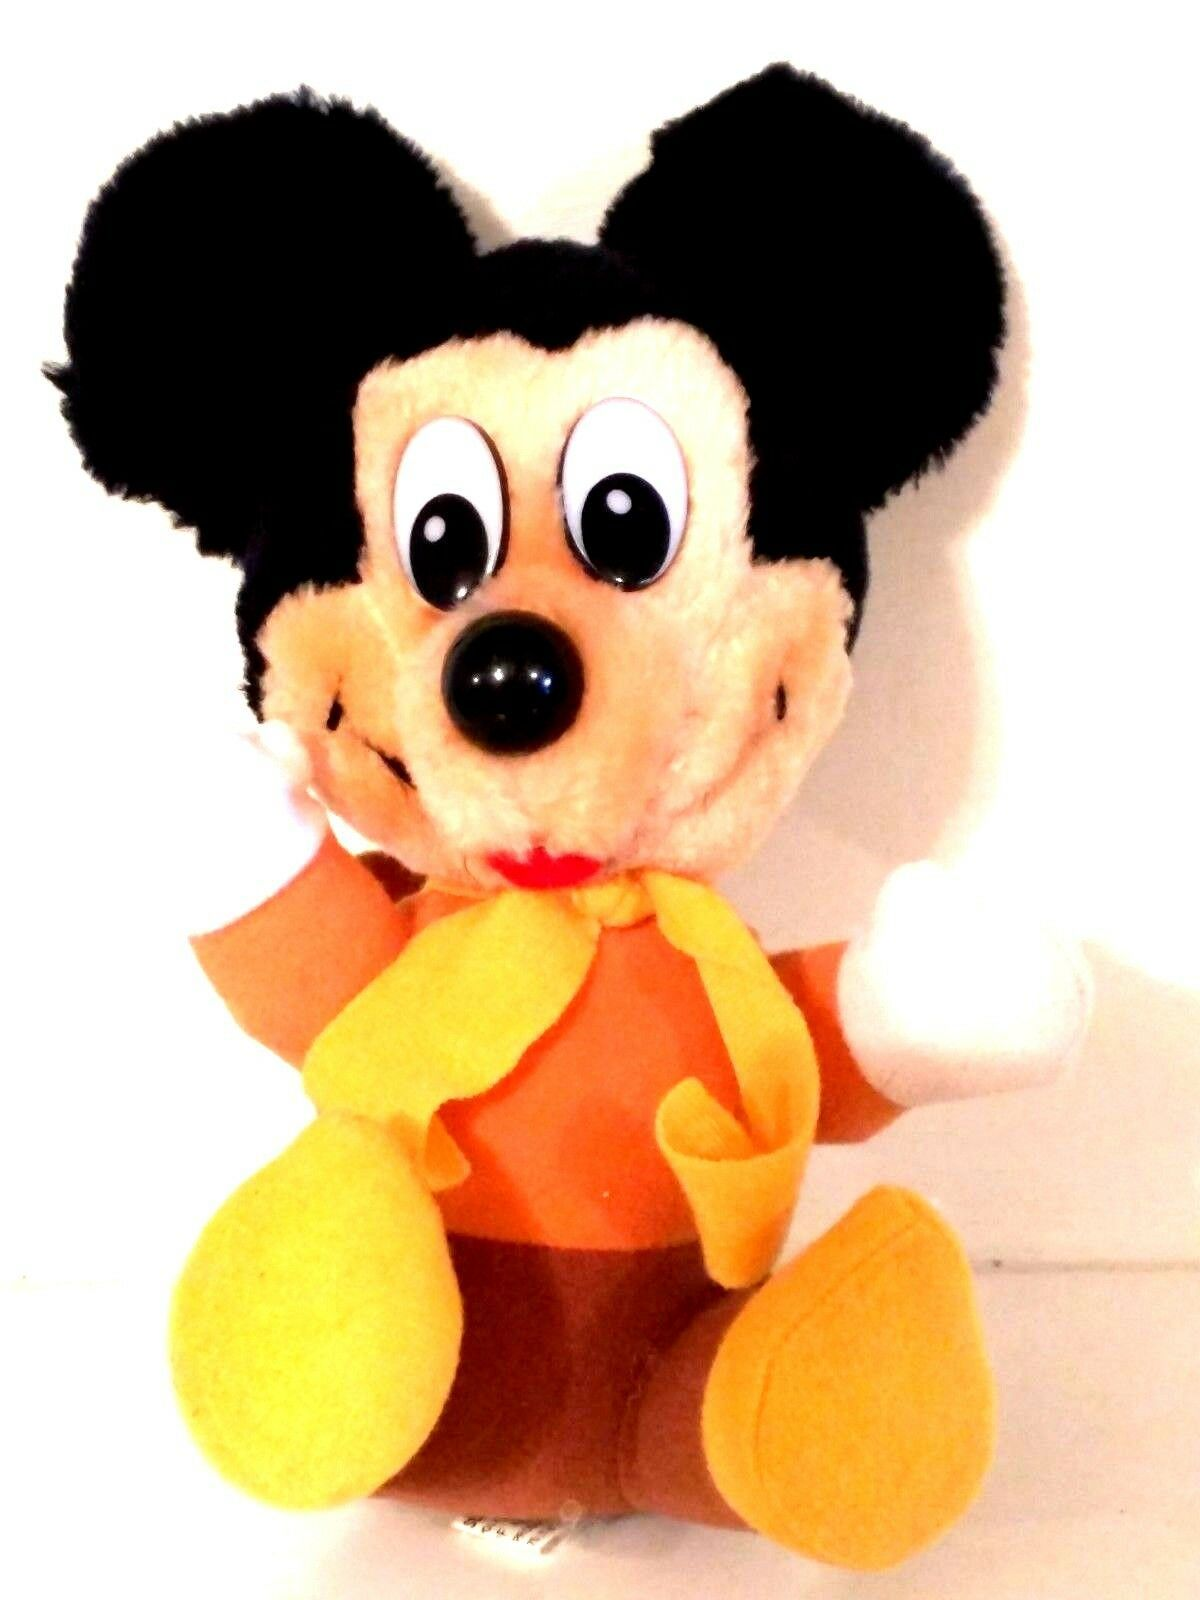 VINTAGE DISNEY - Mickey Mouse Christmas Carol Plush Stuffed Animal - 8 inches - $13.85